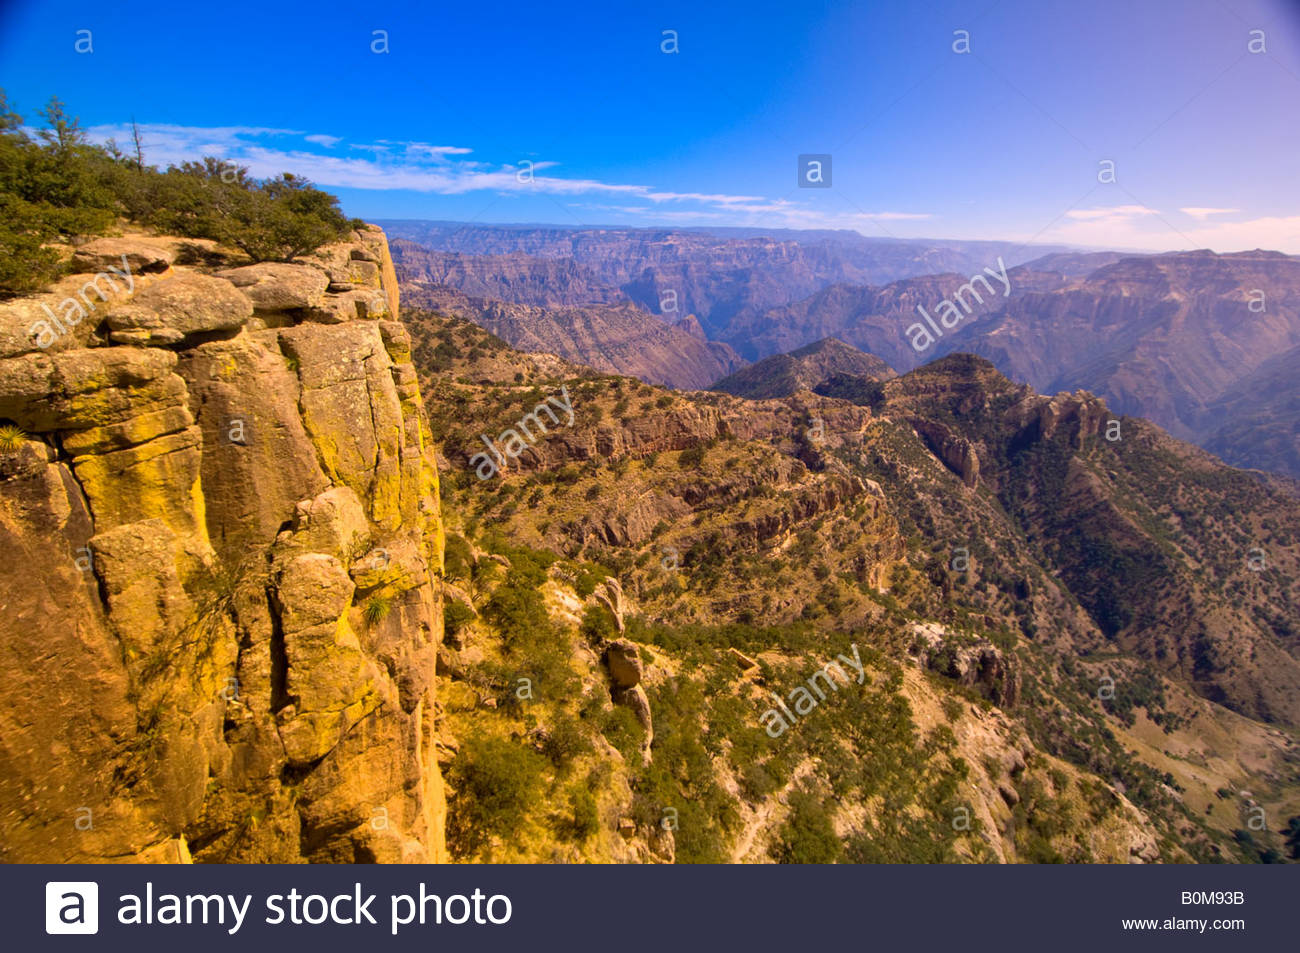 The Copper Canyon overlook at Divisadero Mexico - Stock Image